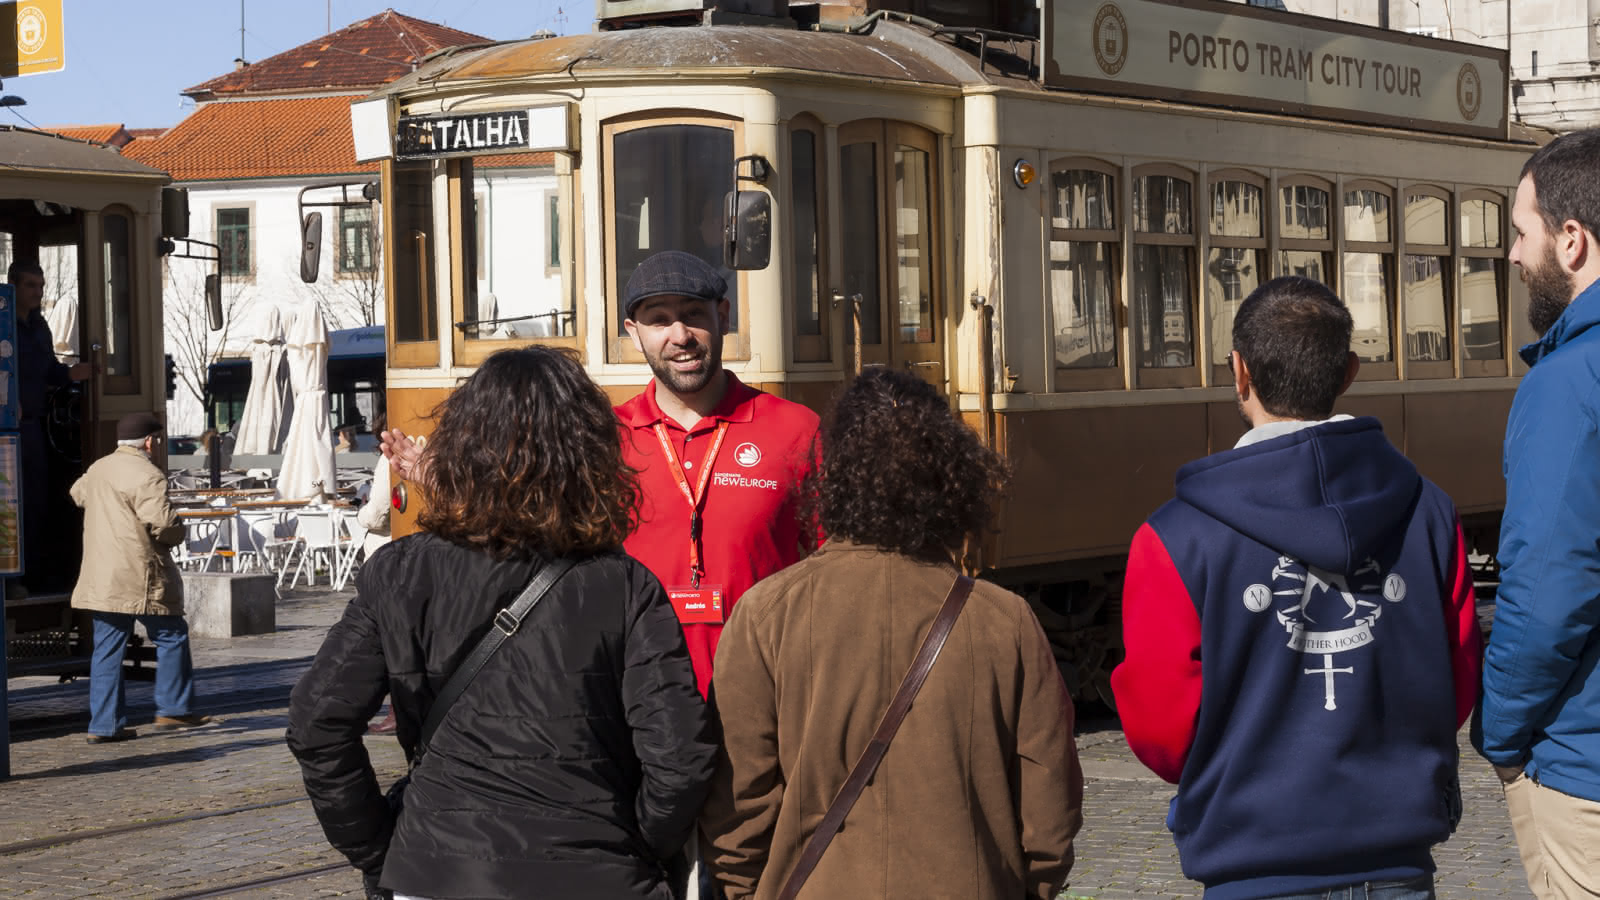 porto local guide showing guests the city